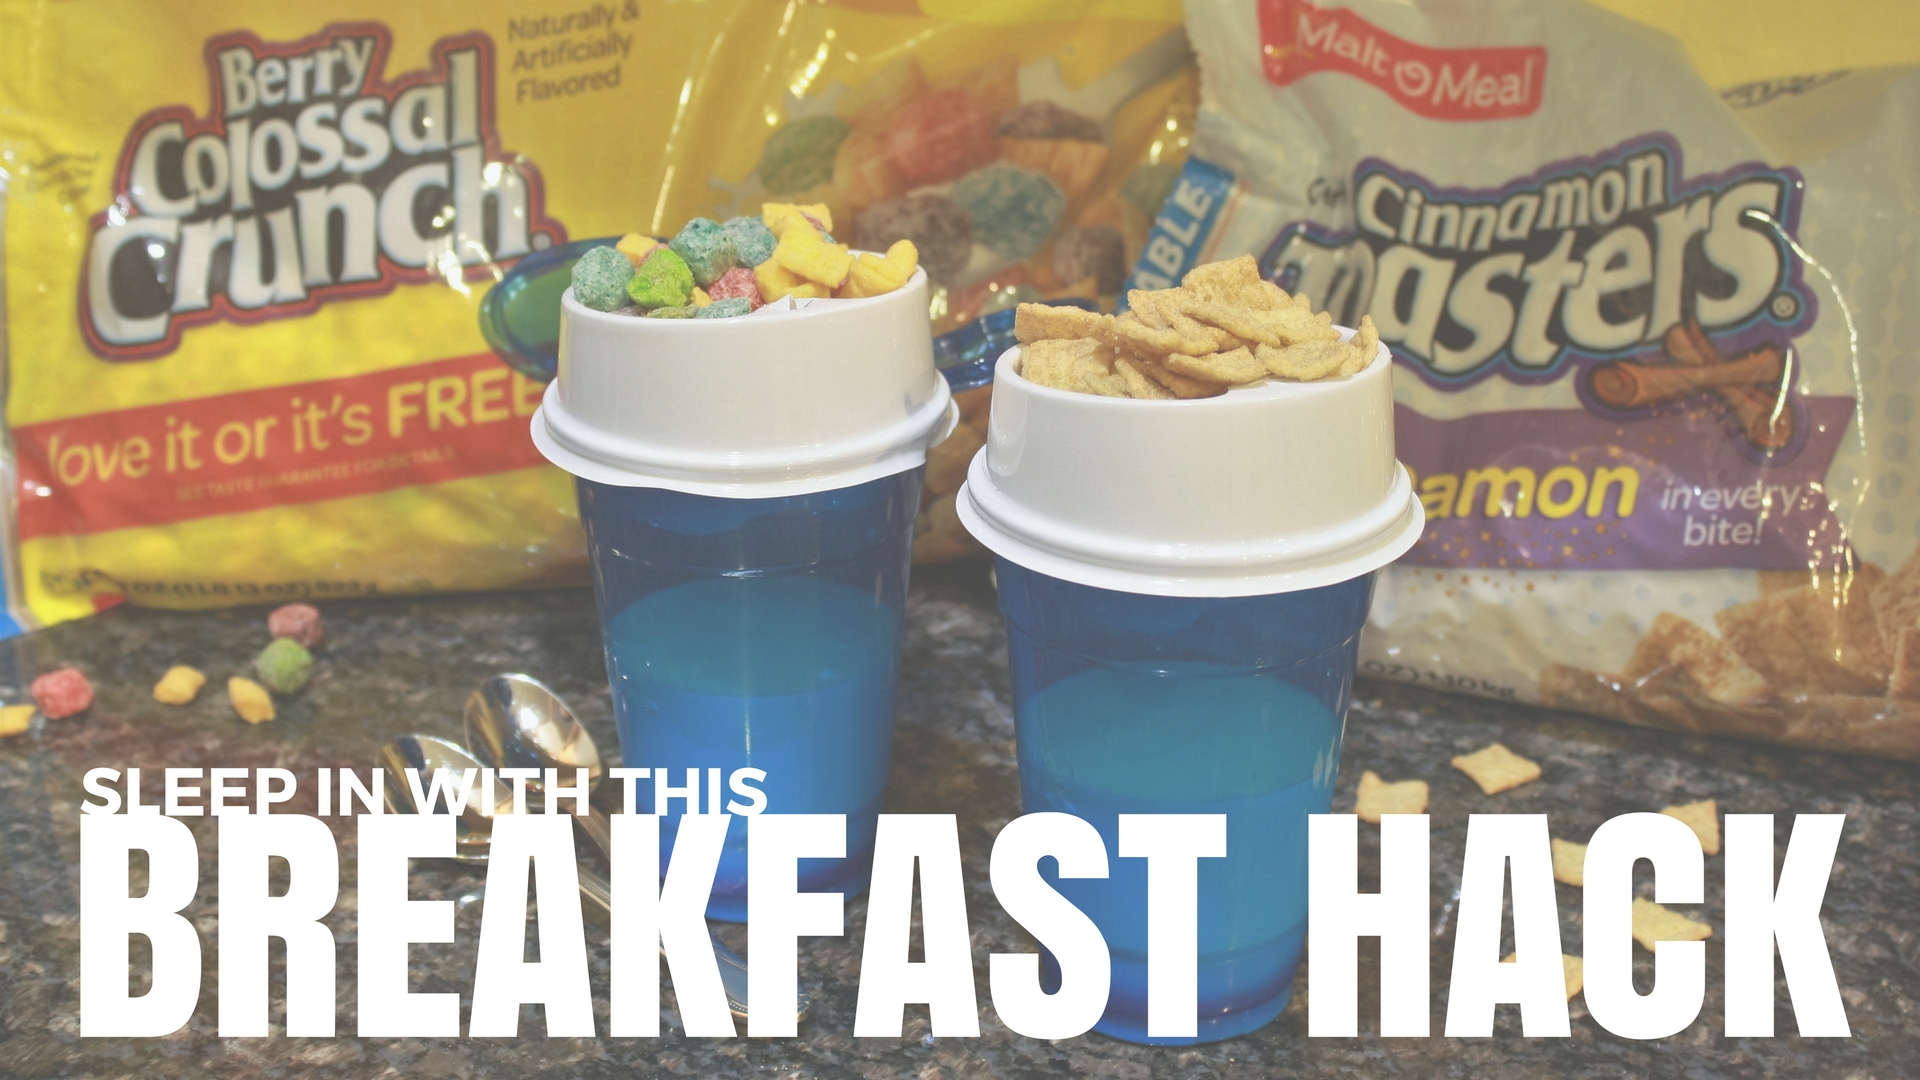 Sleep in with this Breakfast Hack